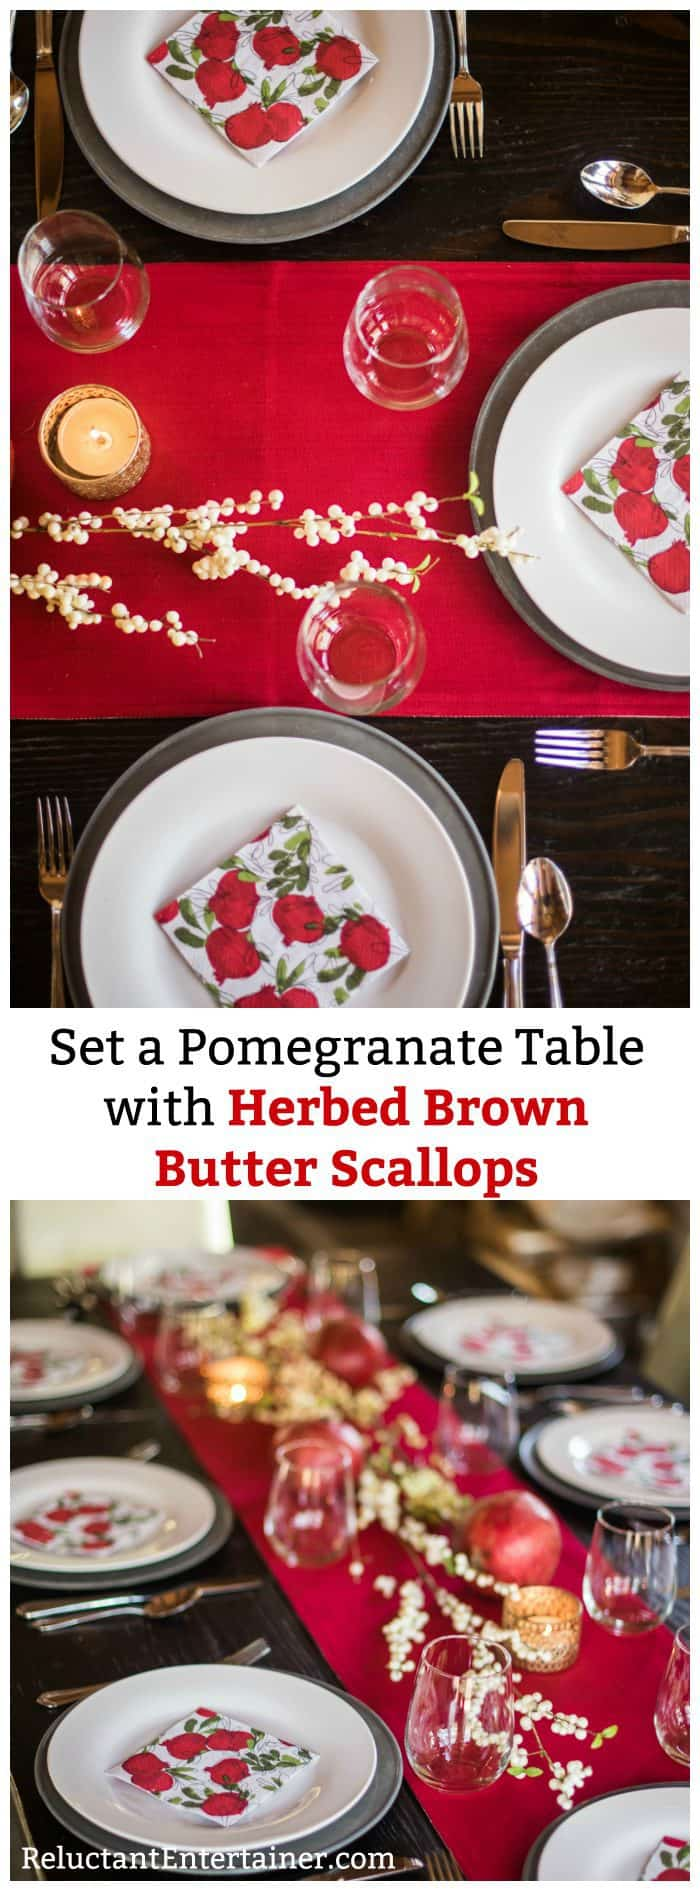 Set a Pomegranate Table  with Herbed Brown  Butter Scallops